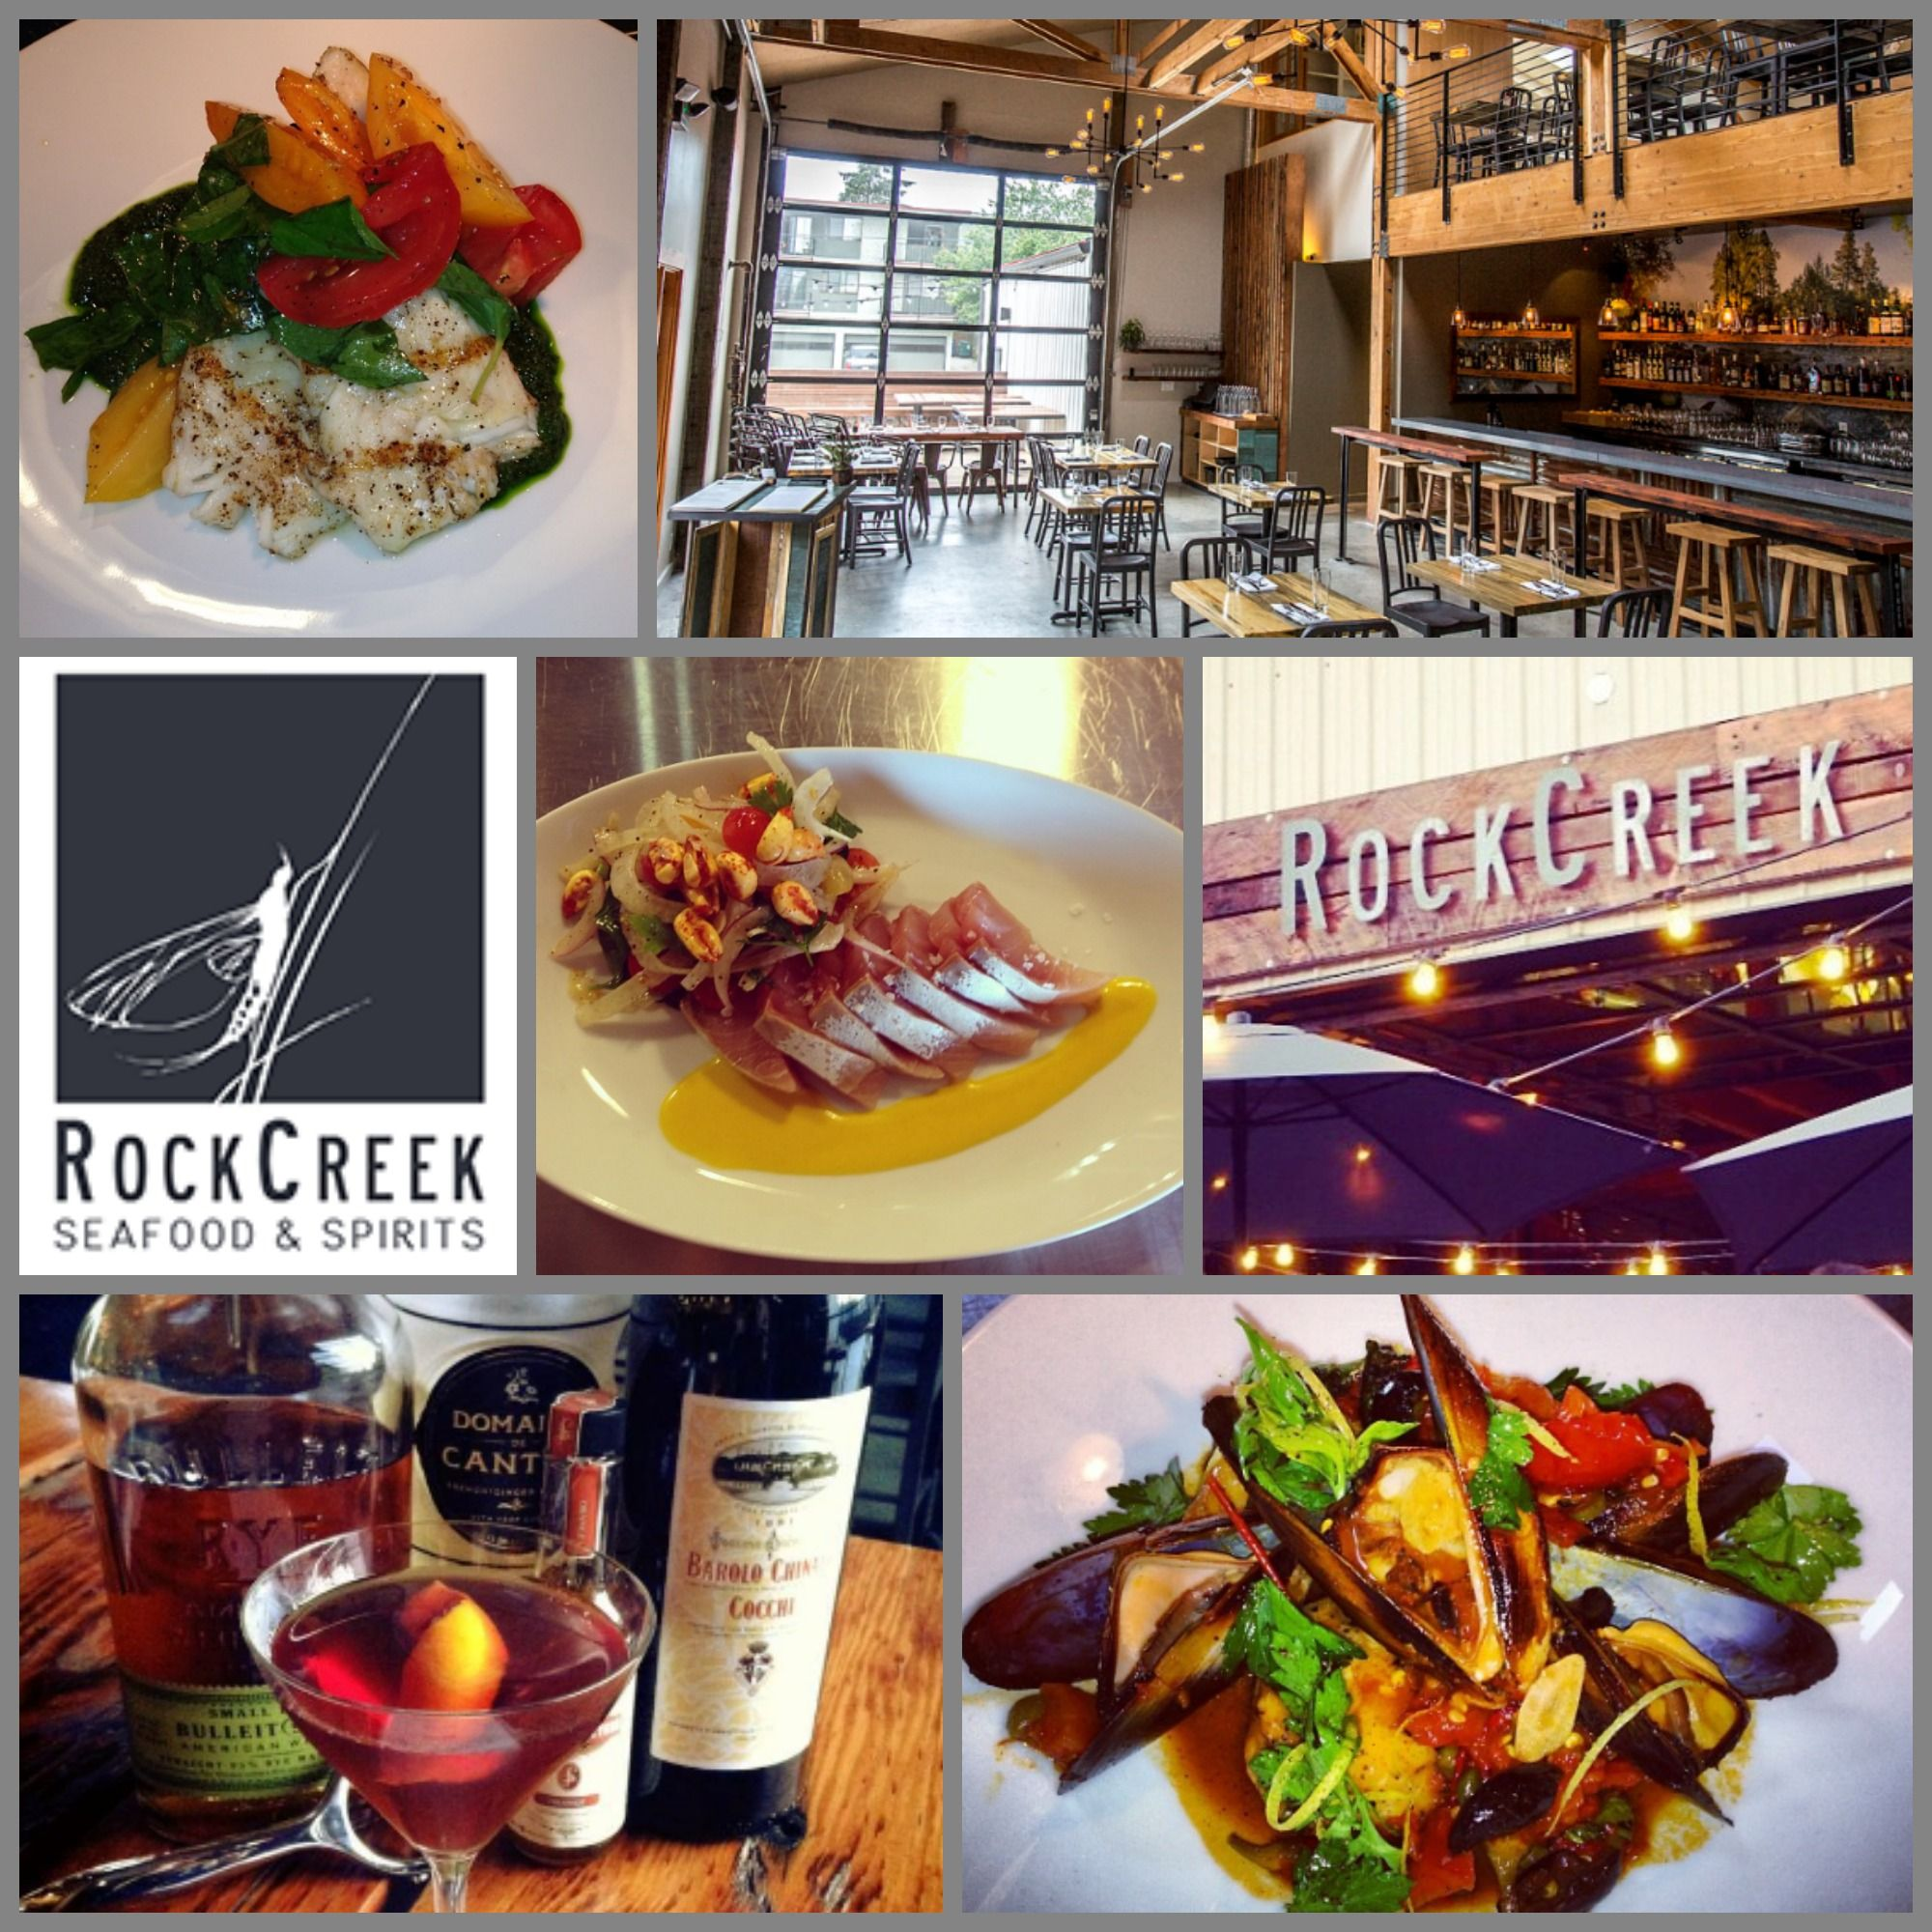 So excited to try RockCreek Seattle tomorrow night